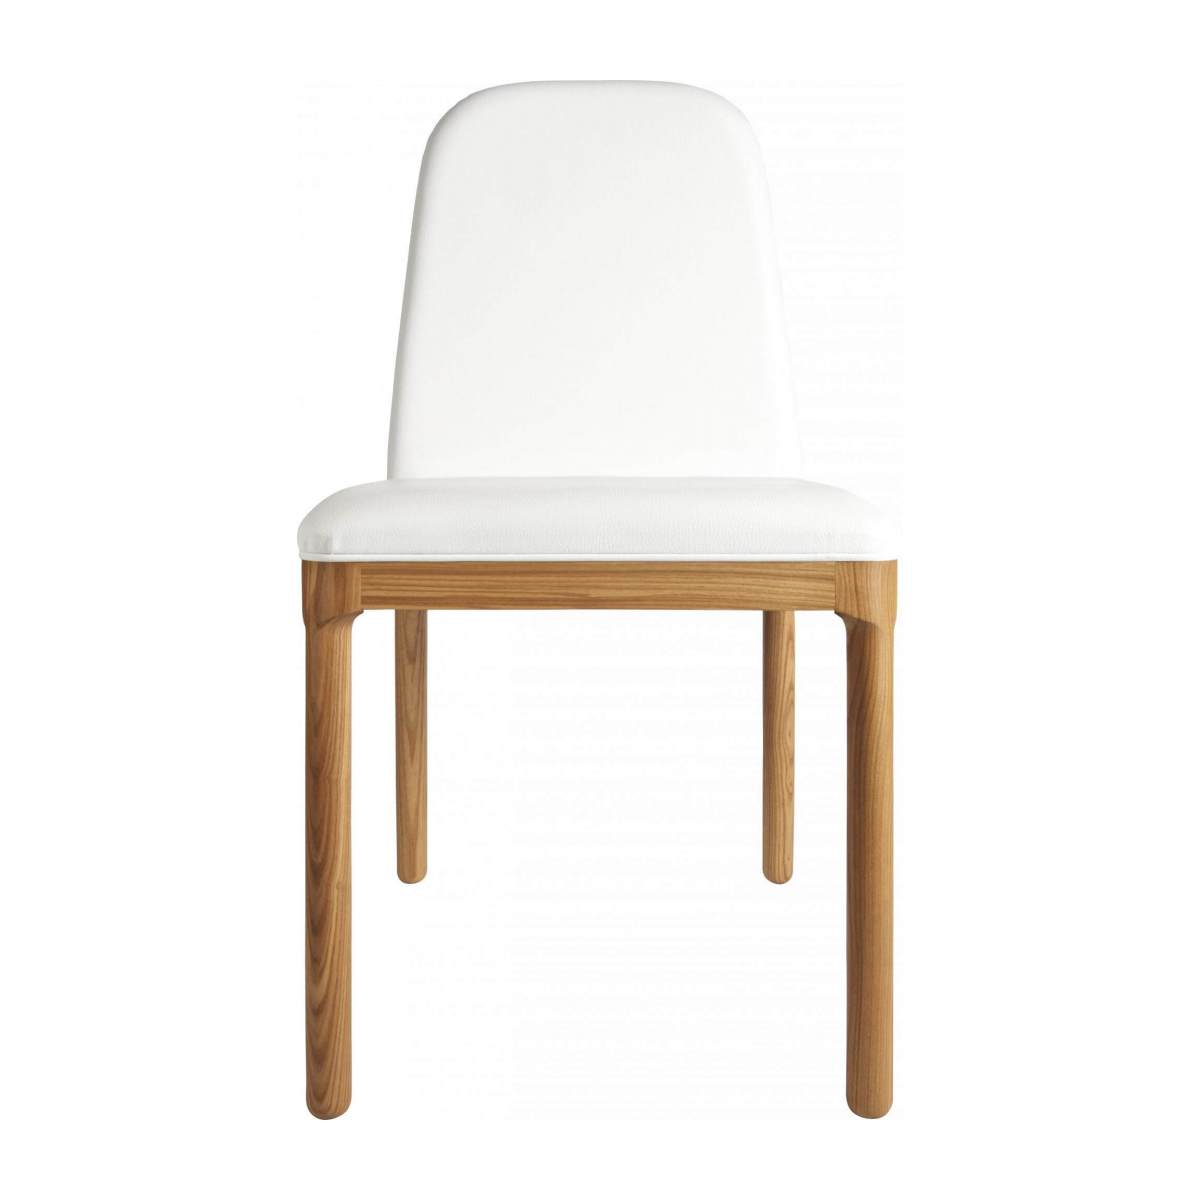 Dining room chairDining room chair n°4